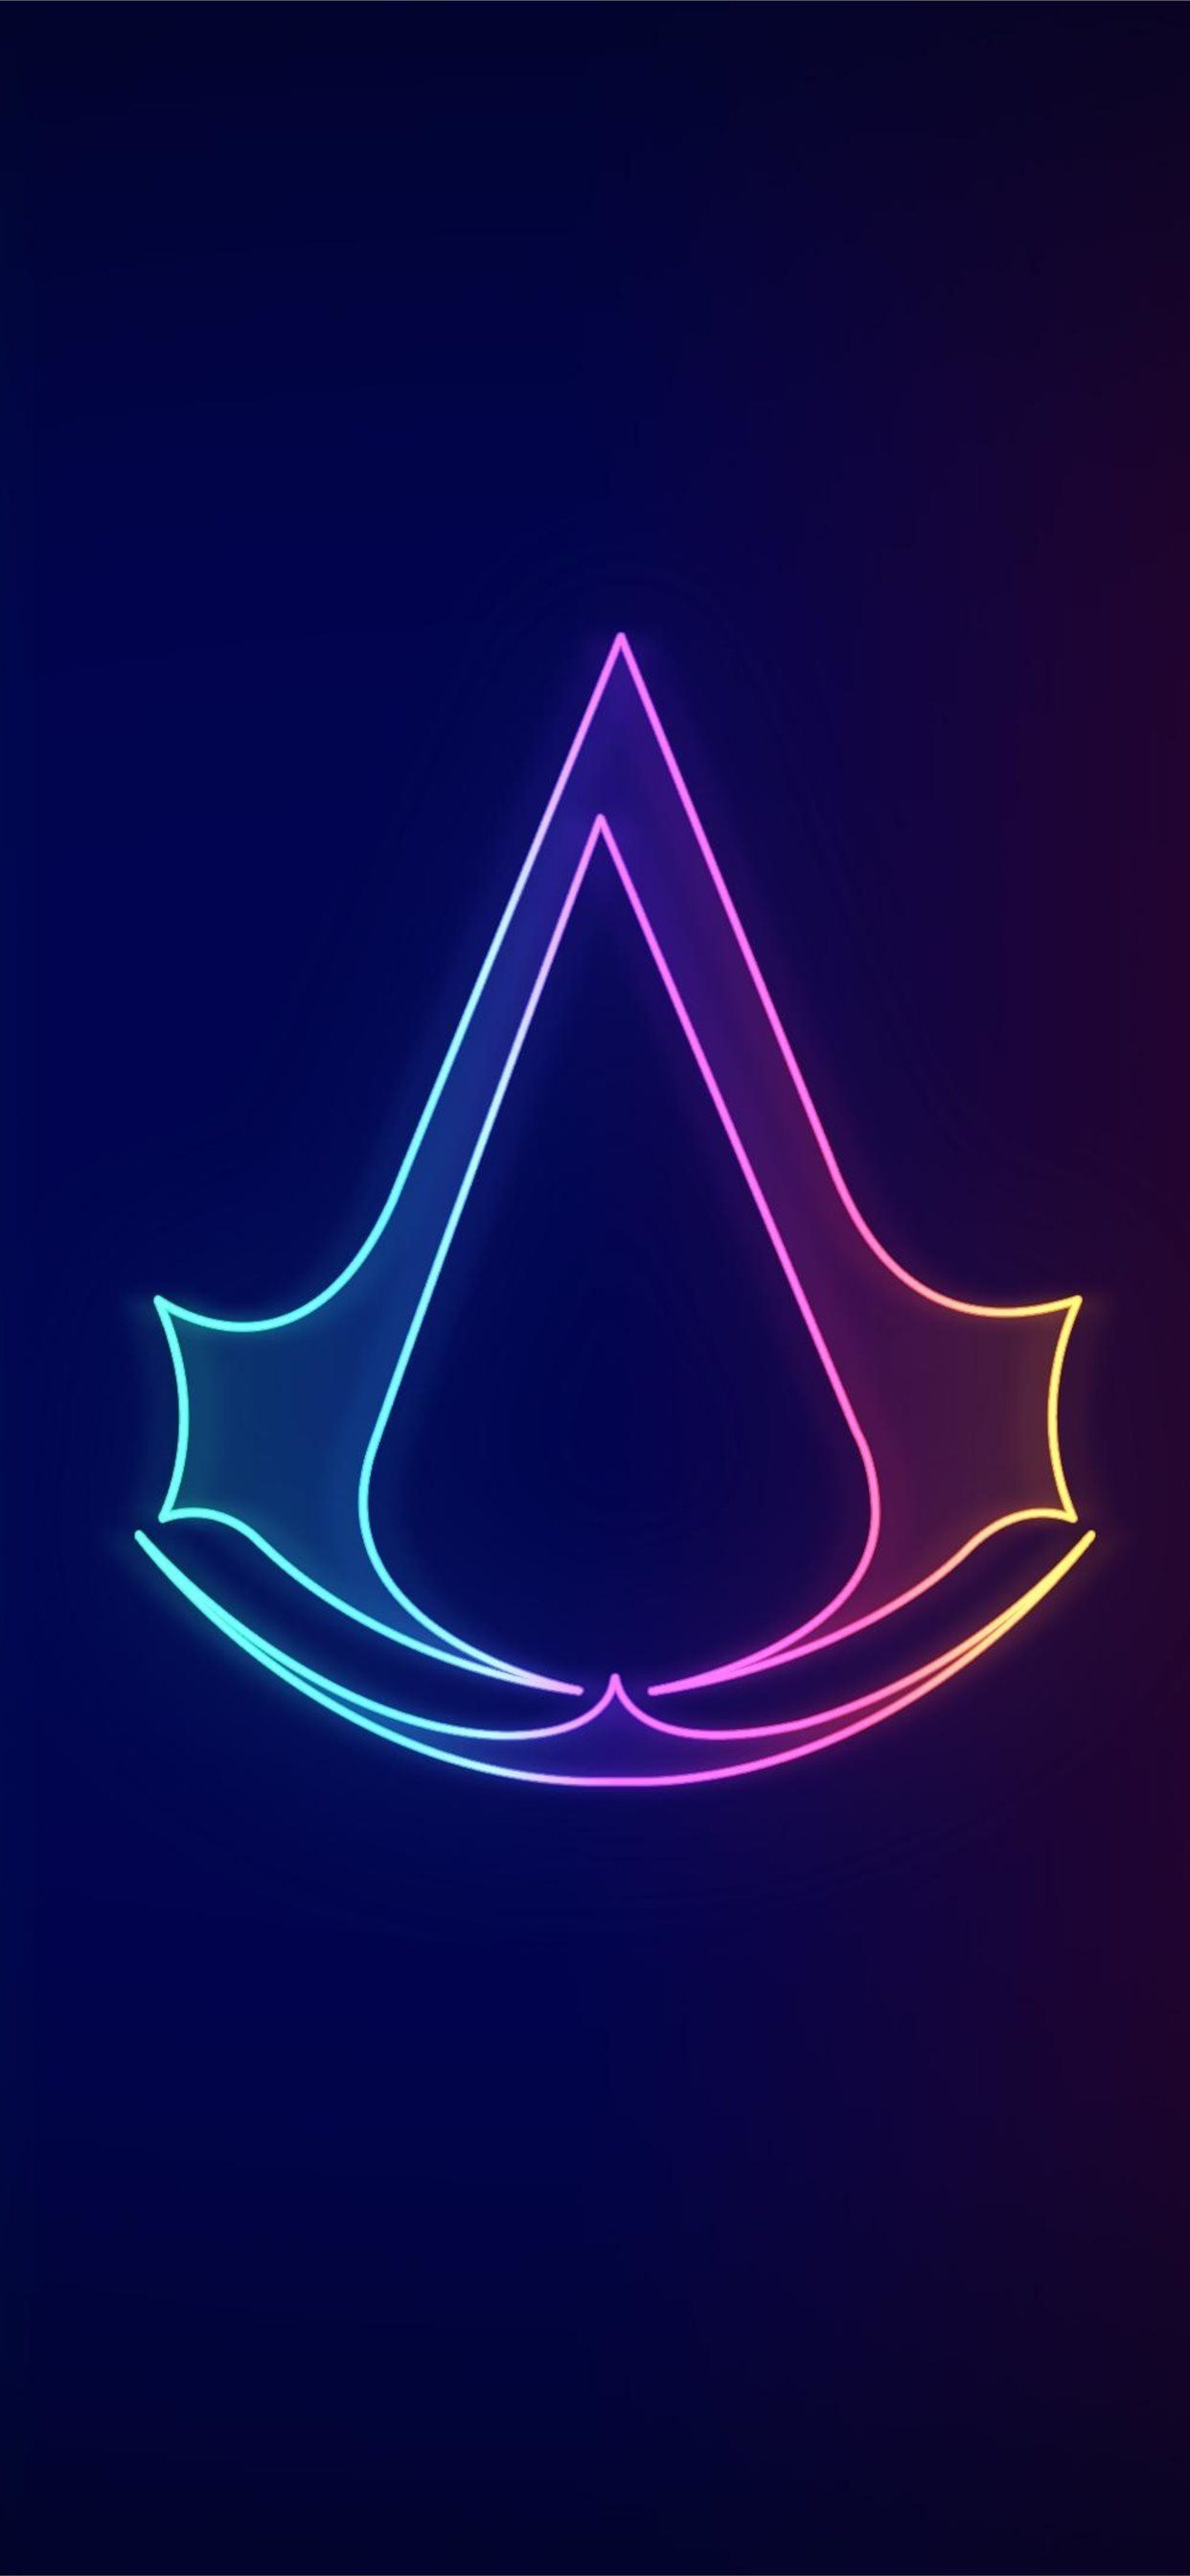 Assassins Creed Neo Logo 4k Iphone X Wallpapers Free Download